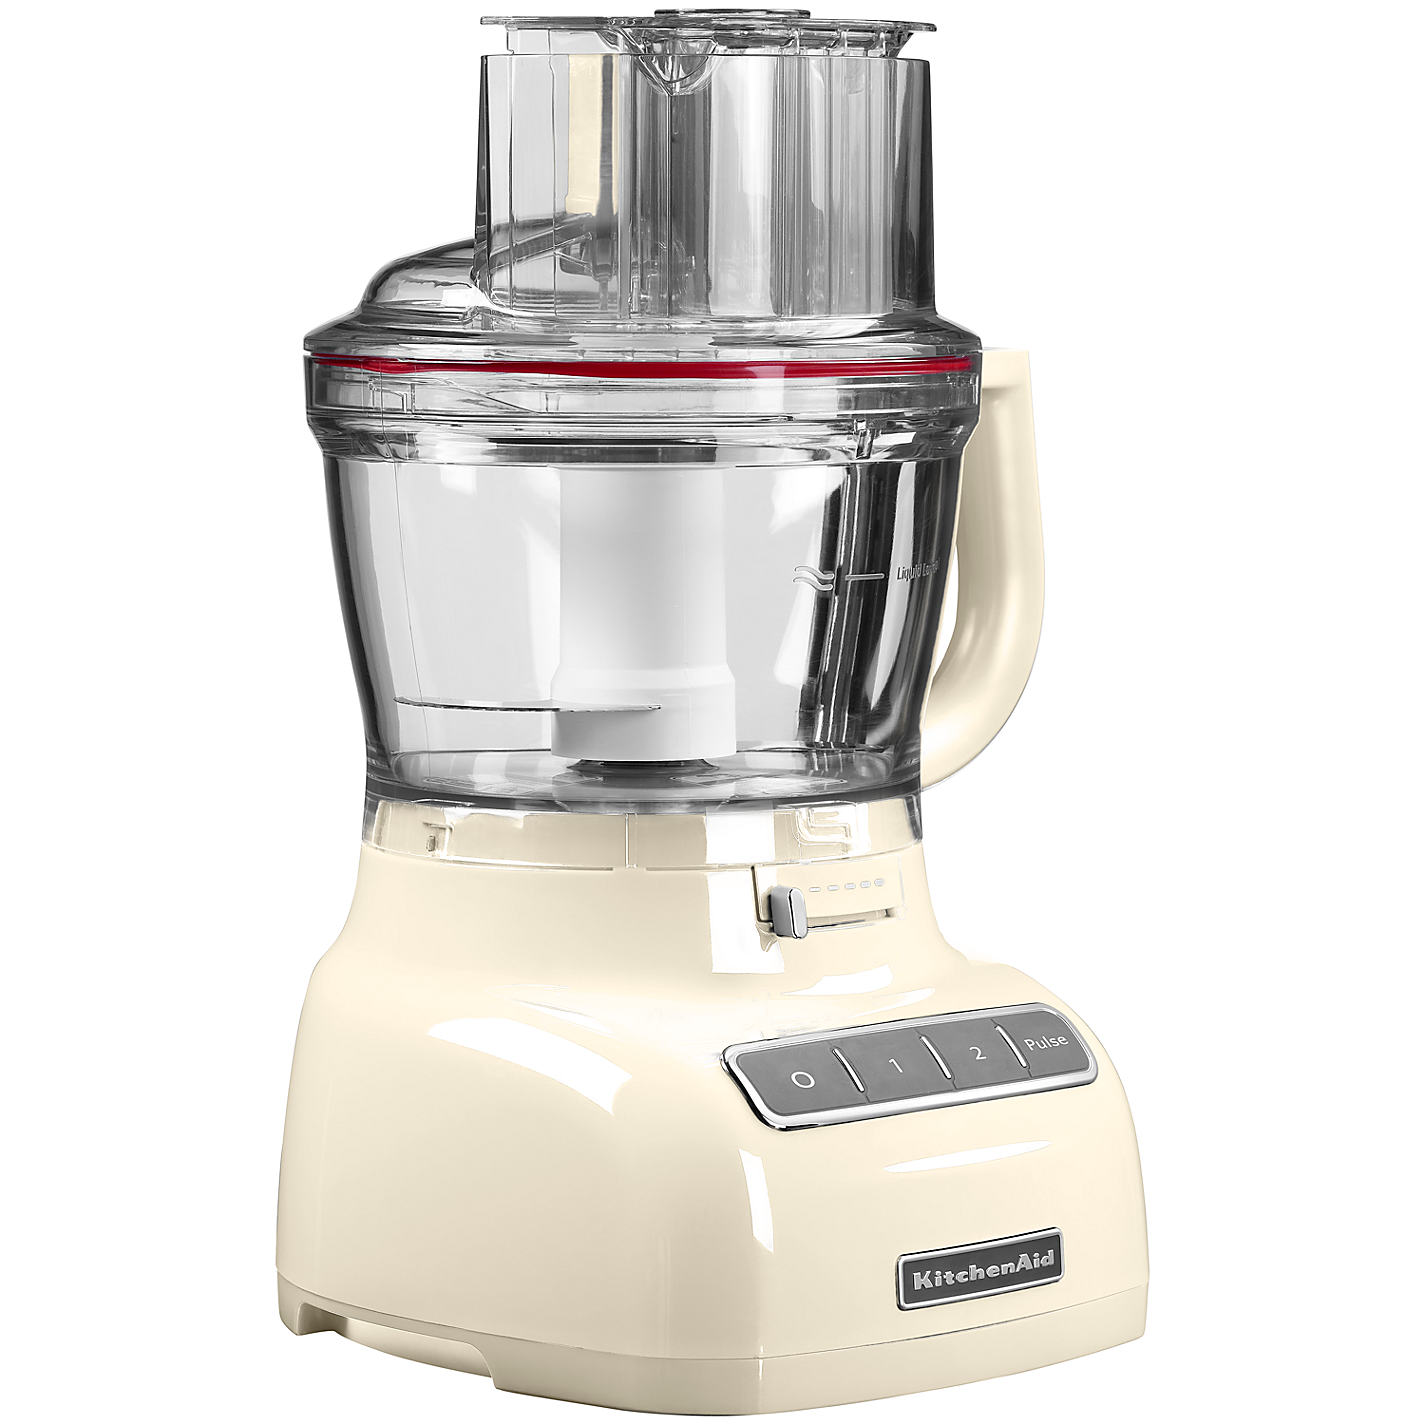 Kitchenaid 5kfp1335bac0 3 1l 300w food processor ebay for Kitchenaid food processor